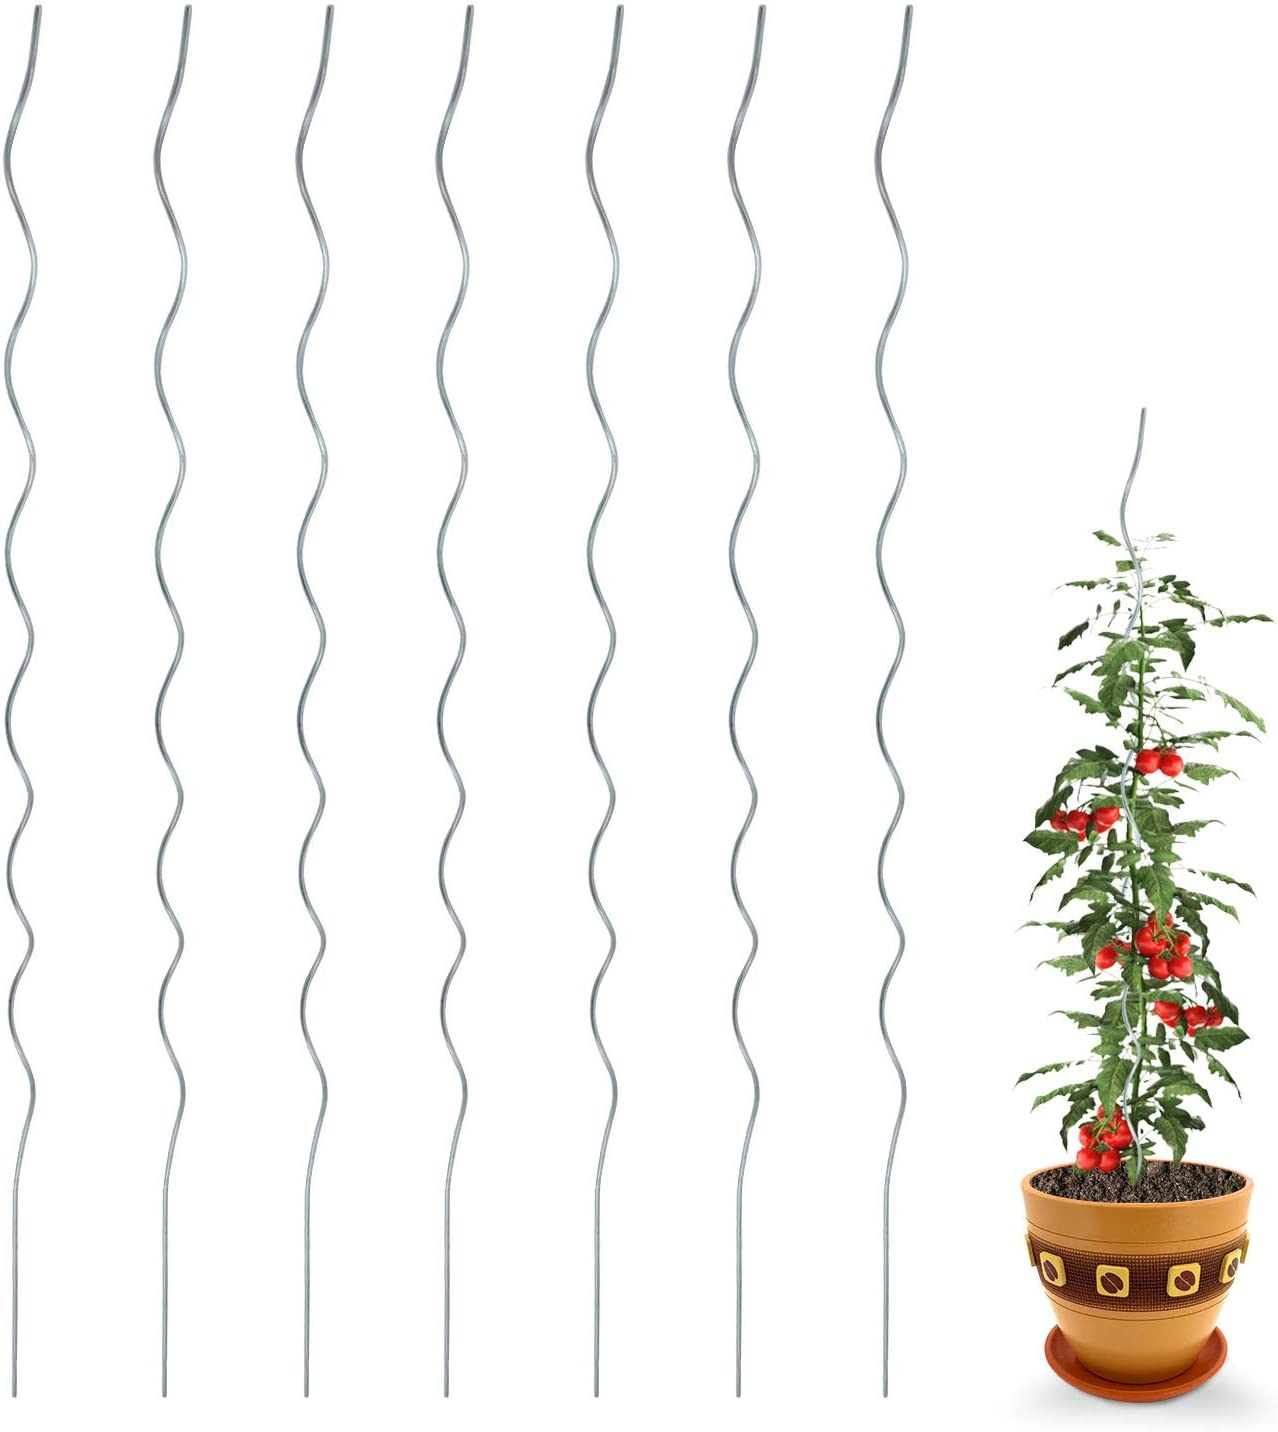 CEED4U 24 Packs 59 Inches Plant Supports Spiral Tomato Cages, Diameter 6mm, Steel Climbing Plants Stake Tower for Garden Balcony Yard Veggie Vine Plants